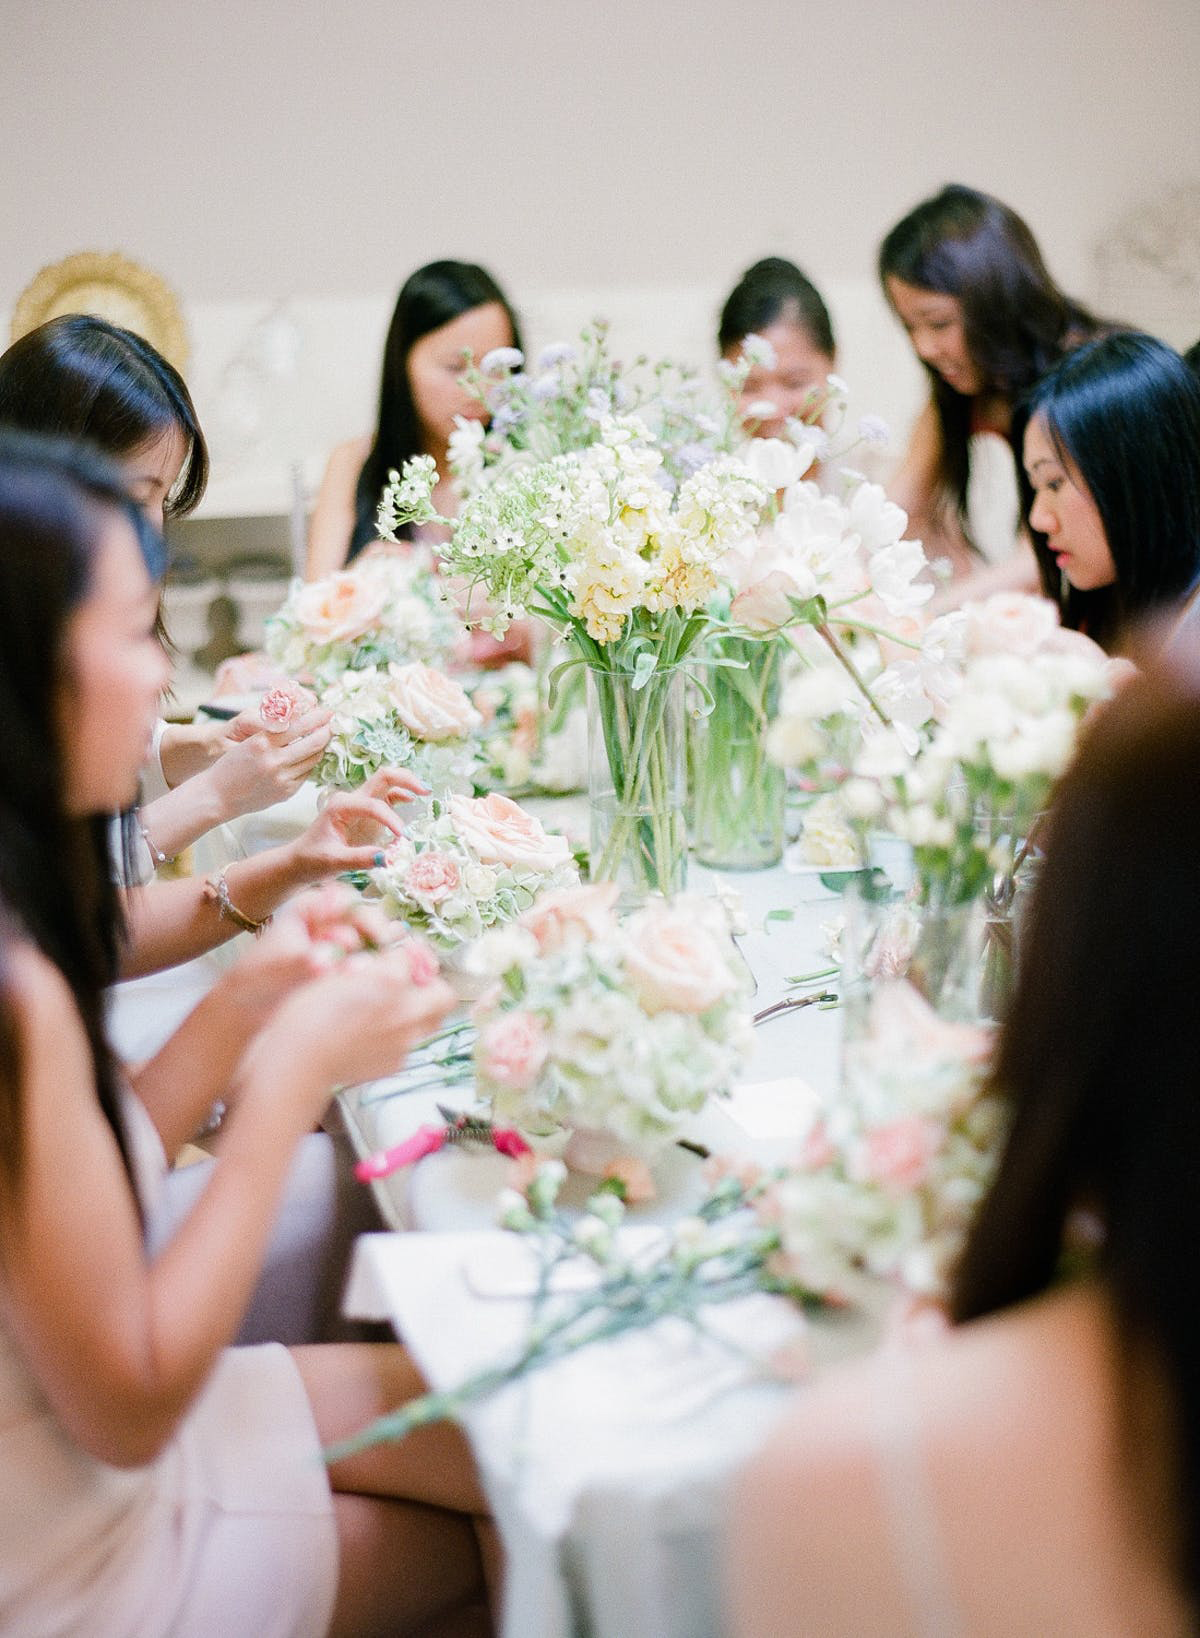 Flower Arranging Bachelorette Party